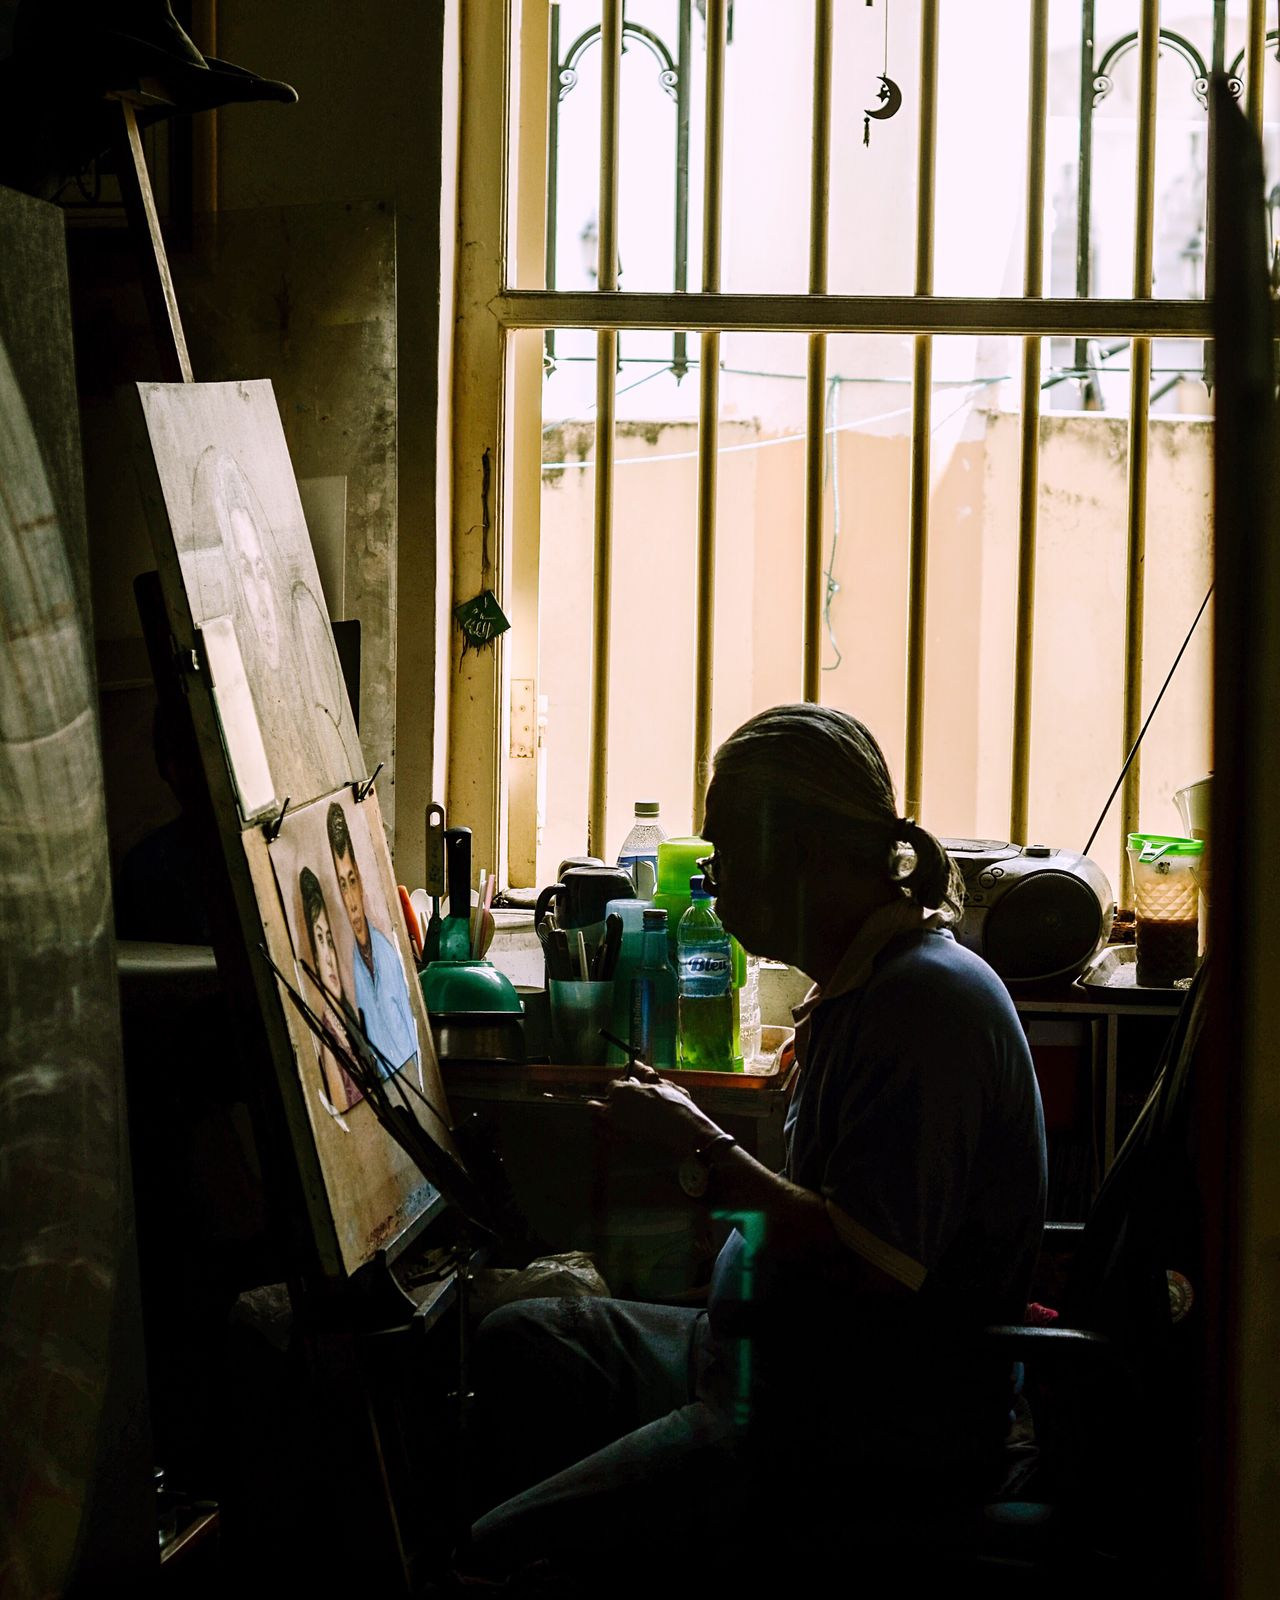 Real People Working Window Indoors  Occupation One Person Expertise Skill  Workshop Men Day People Artistic Artist At Work Artist Painting Penang Malaysia